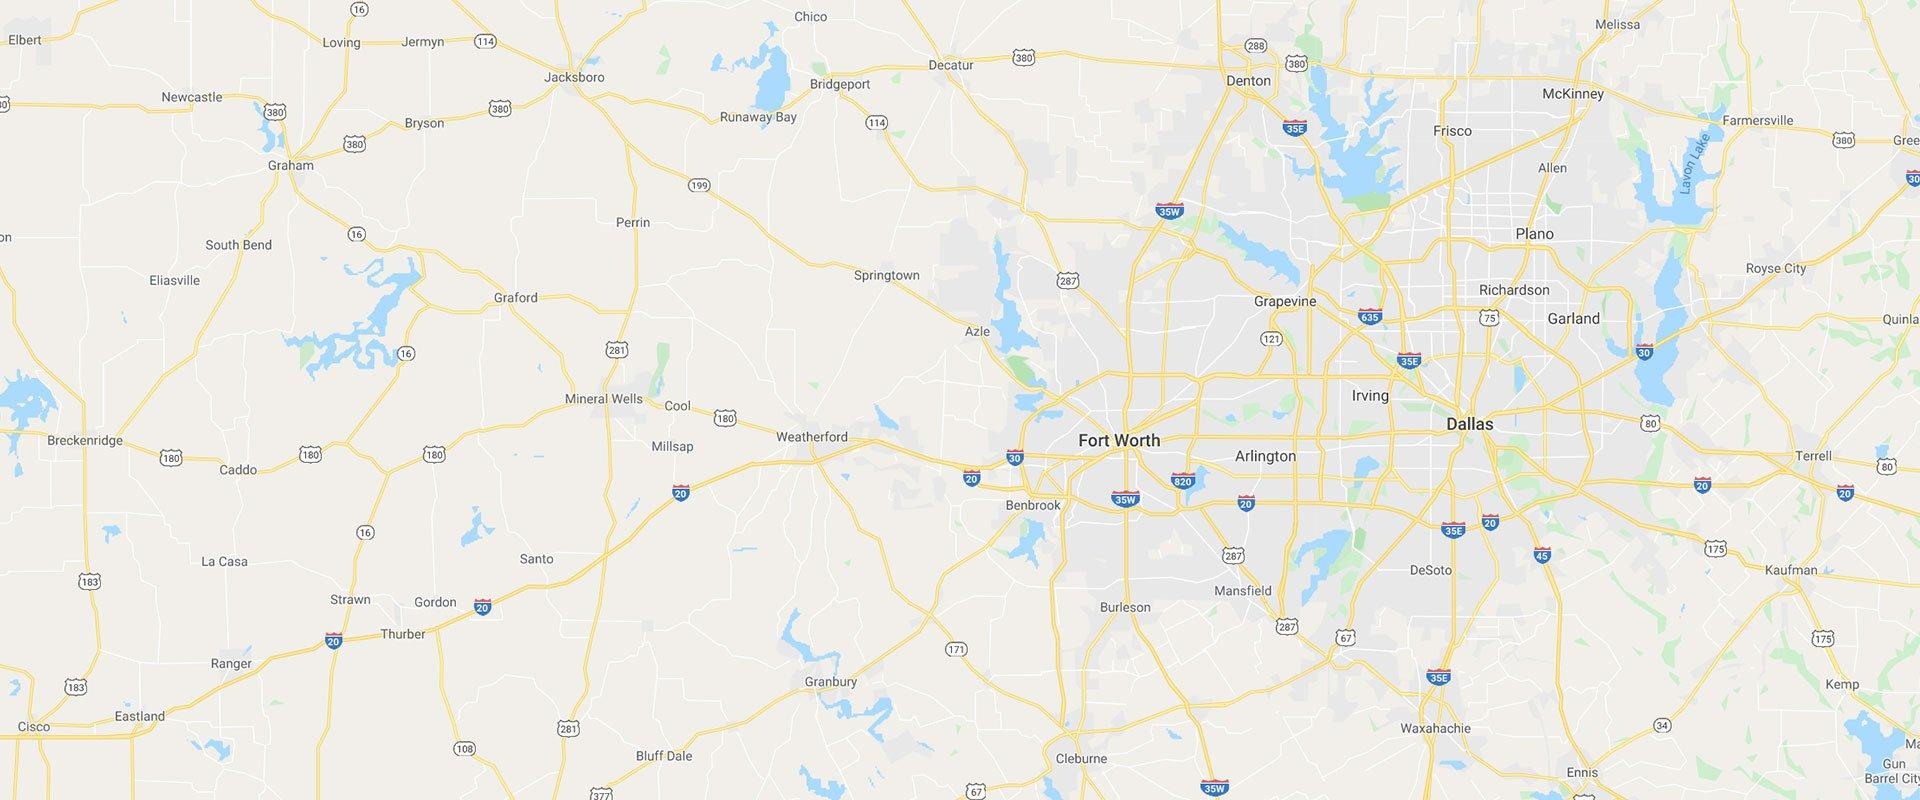 a map of north texas